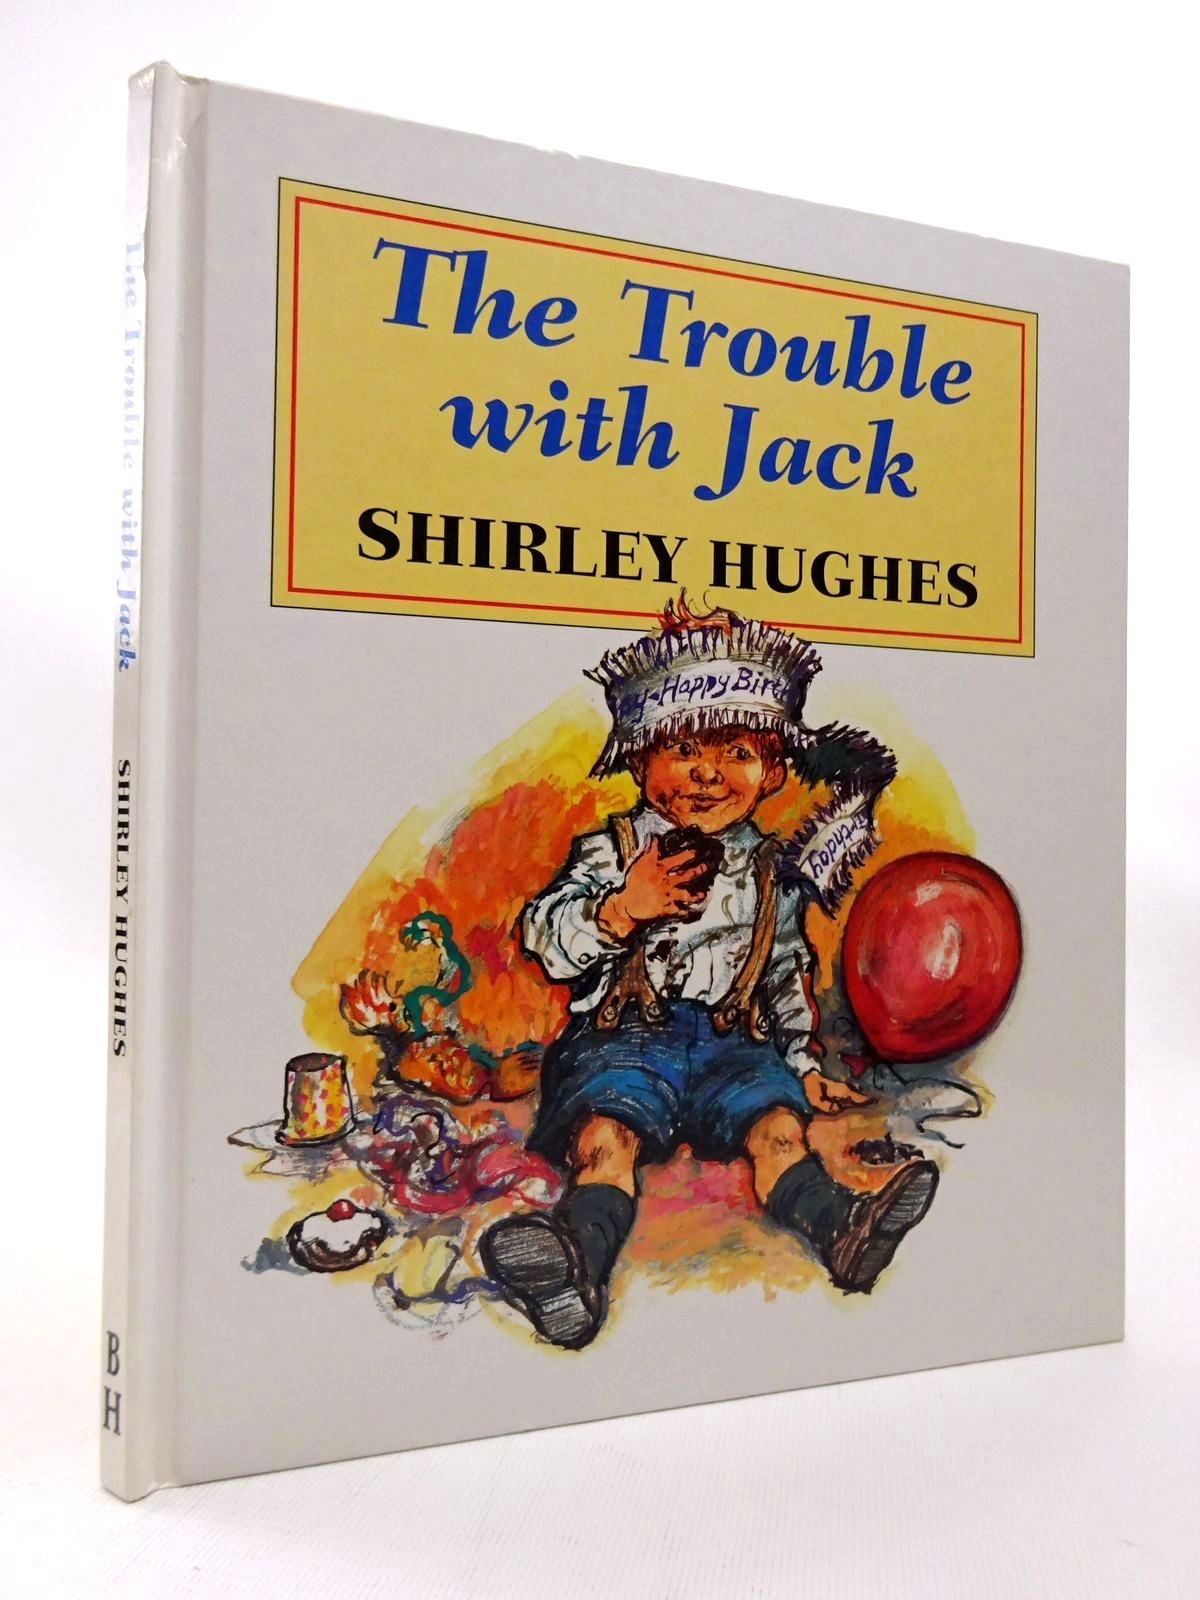 Photo of THE TROUBLE WITH JACK written by Hughes, Shirley illustrated by Hughes, Shirley published by The Bodley Head (STOCK CODE: 1815532)  for sale by Stella & Rose's Books